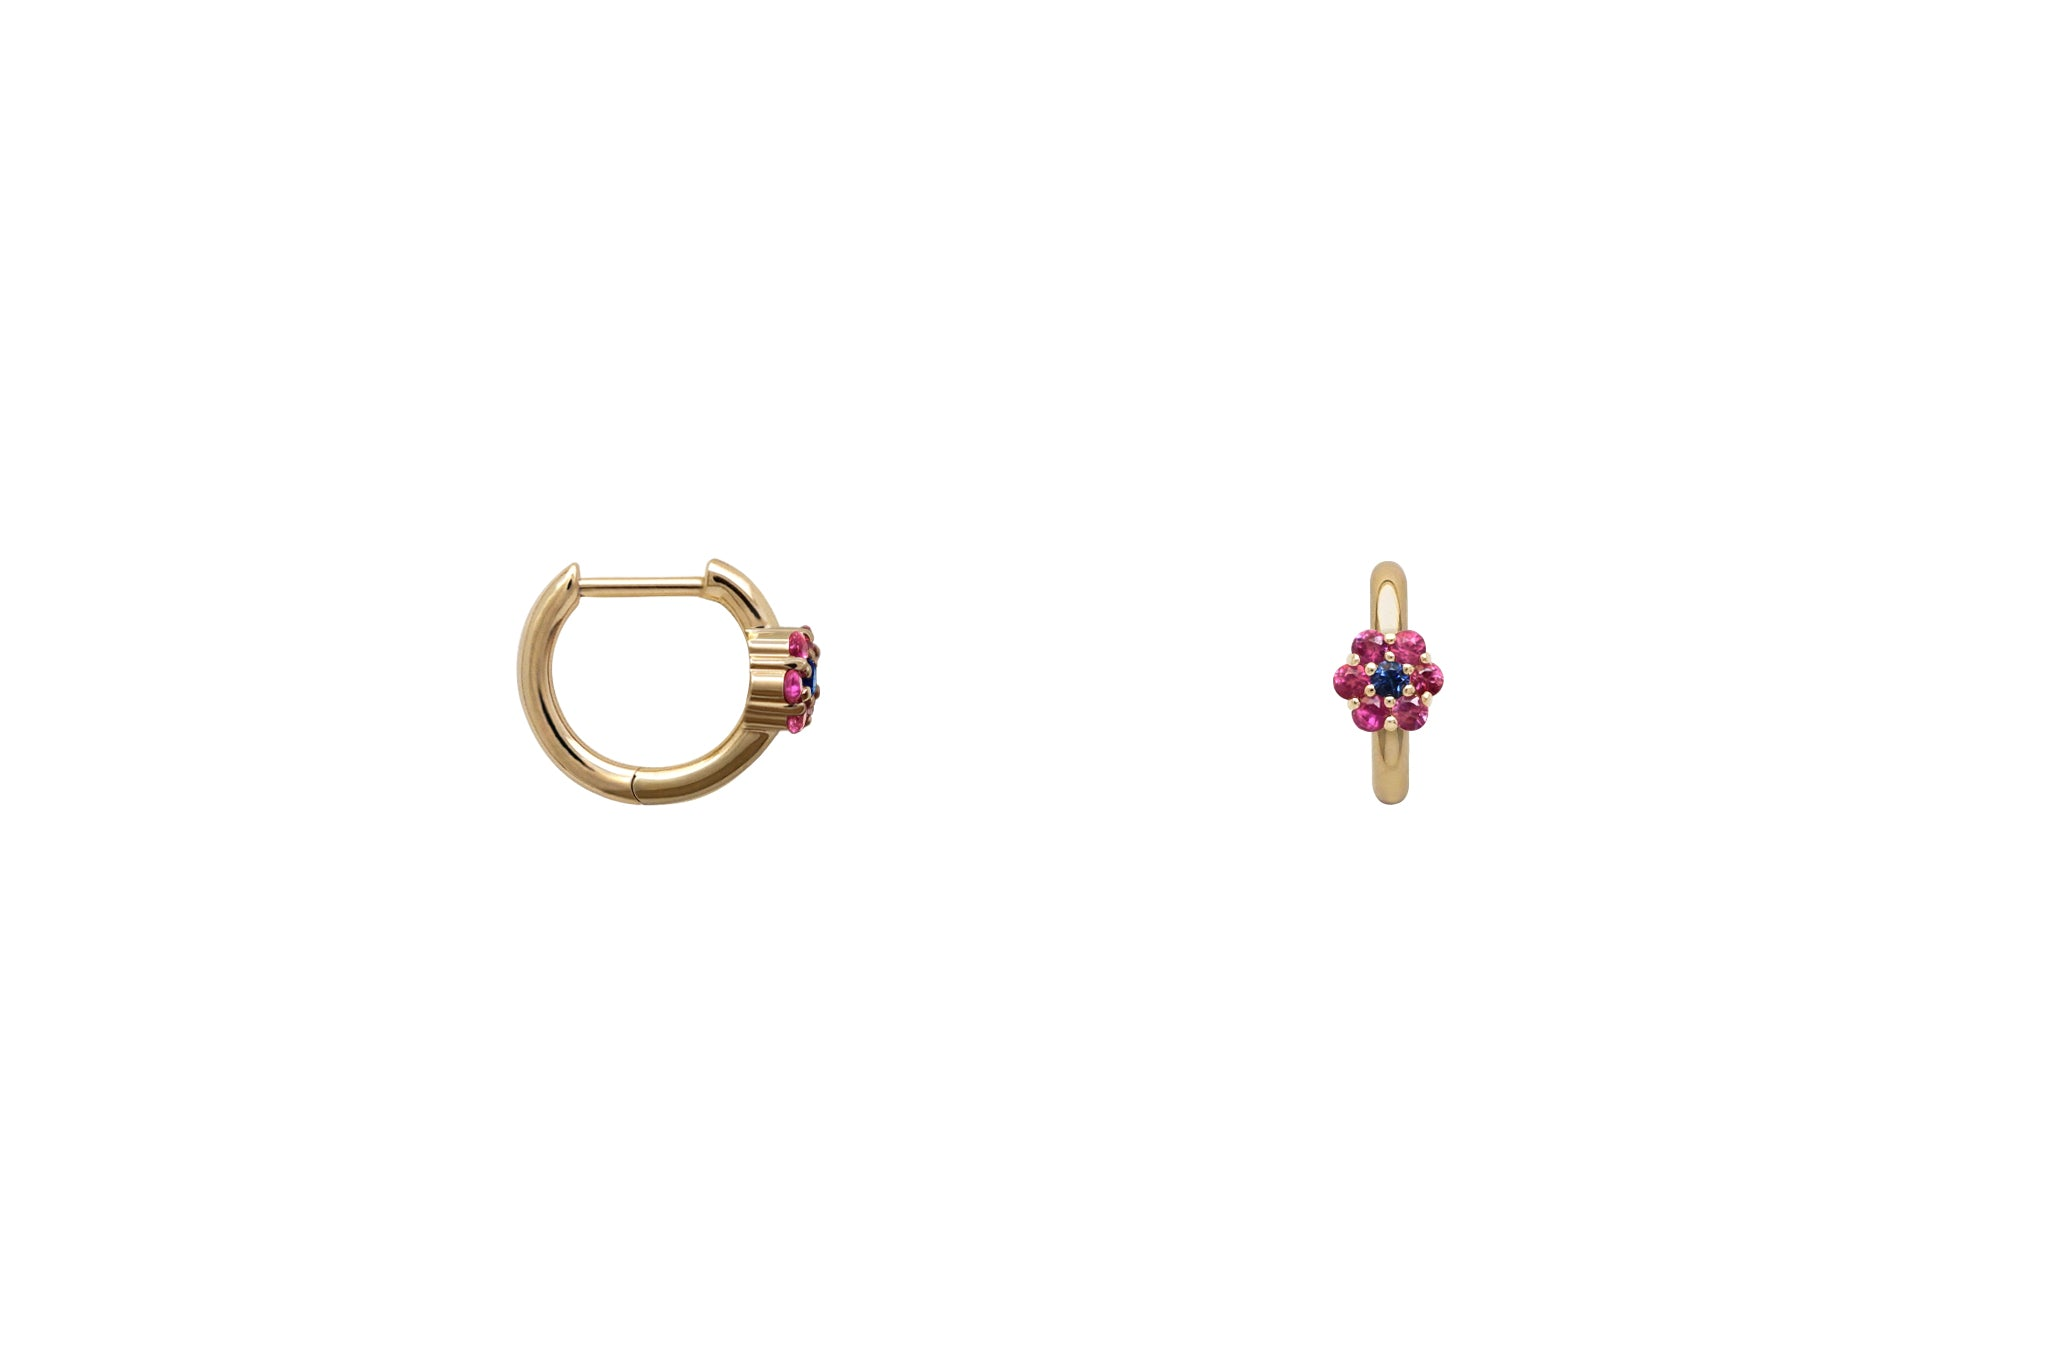 Pink Sapphire Floral Ear Hugging Hoop Earrings